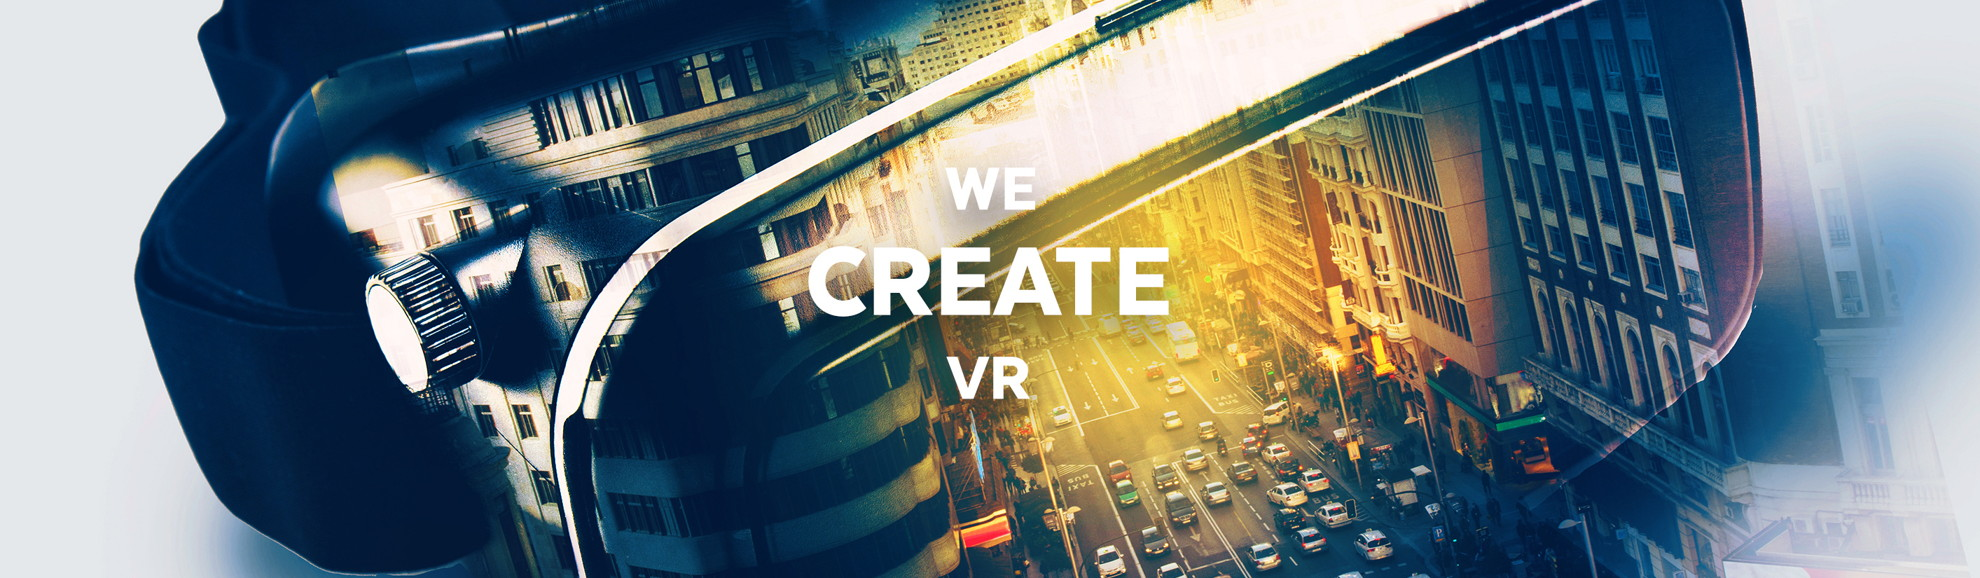 We create VR apps